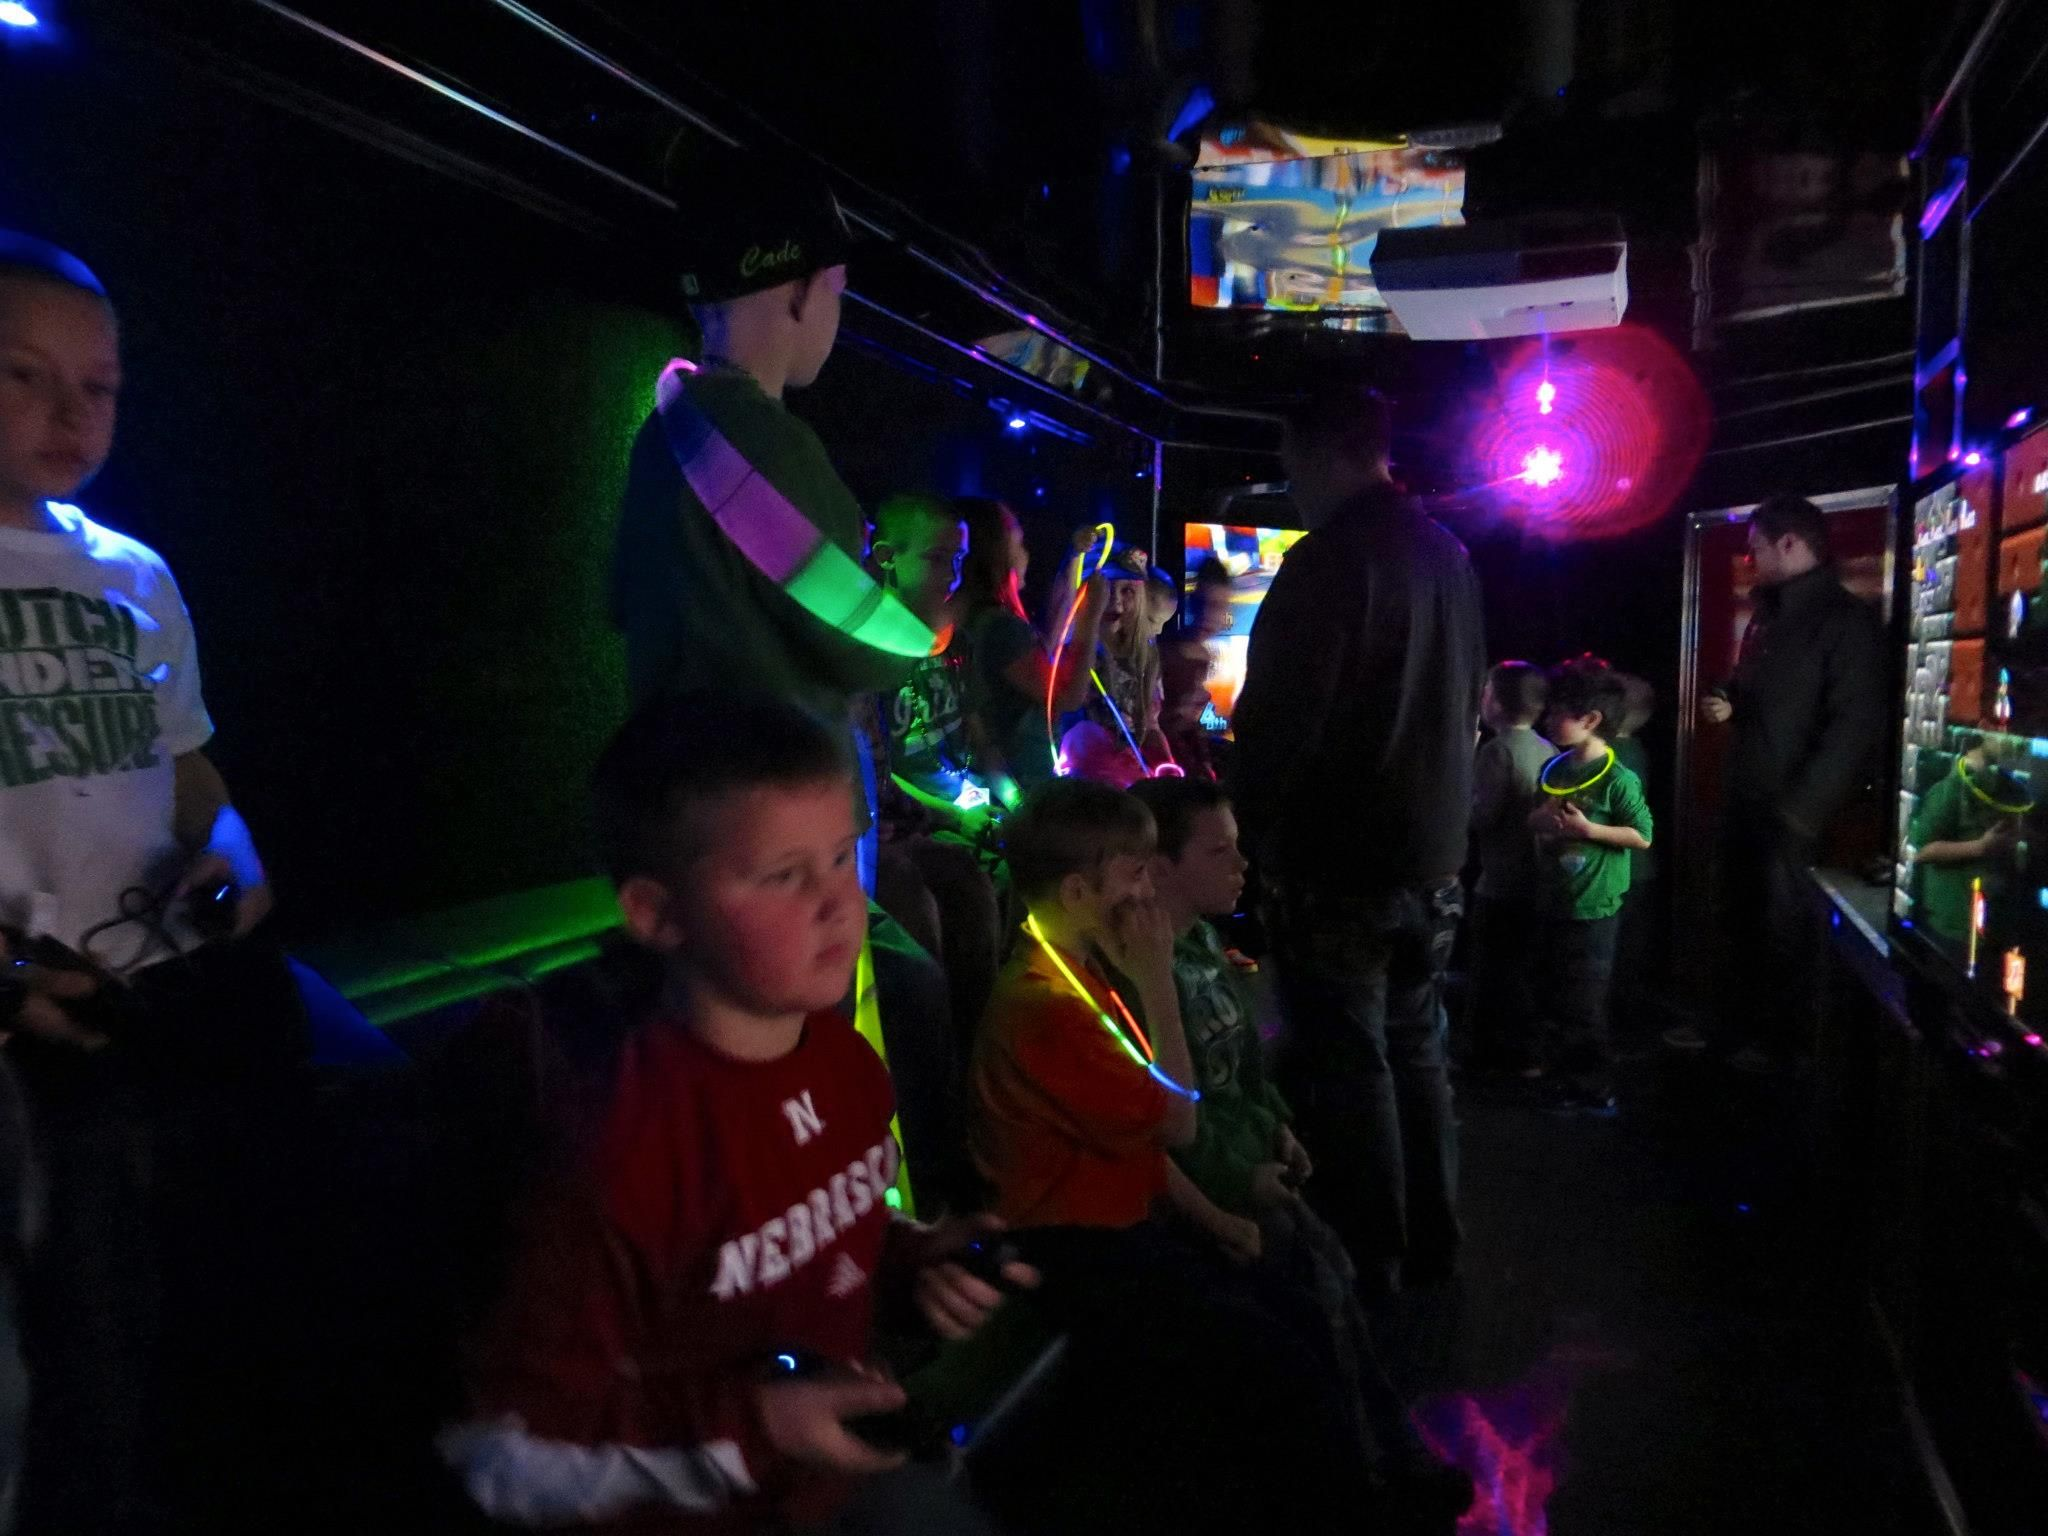 Check out our Laser Light Show! Video game party